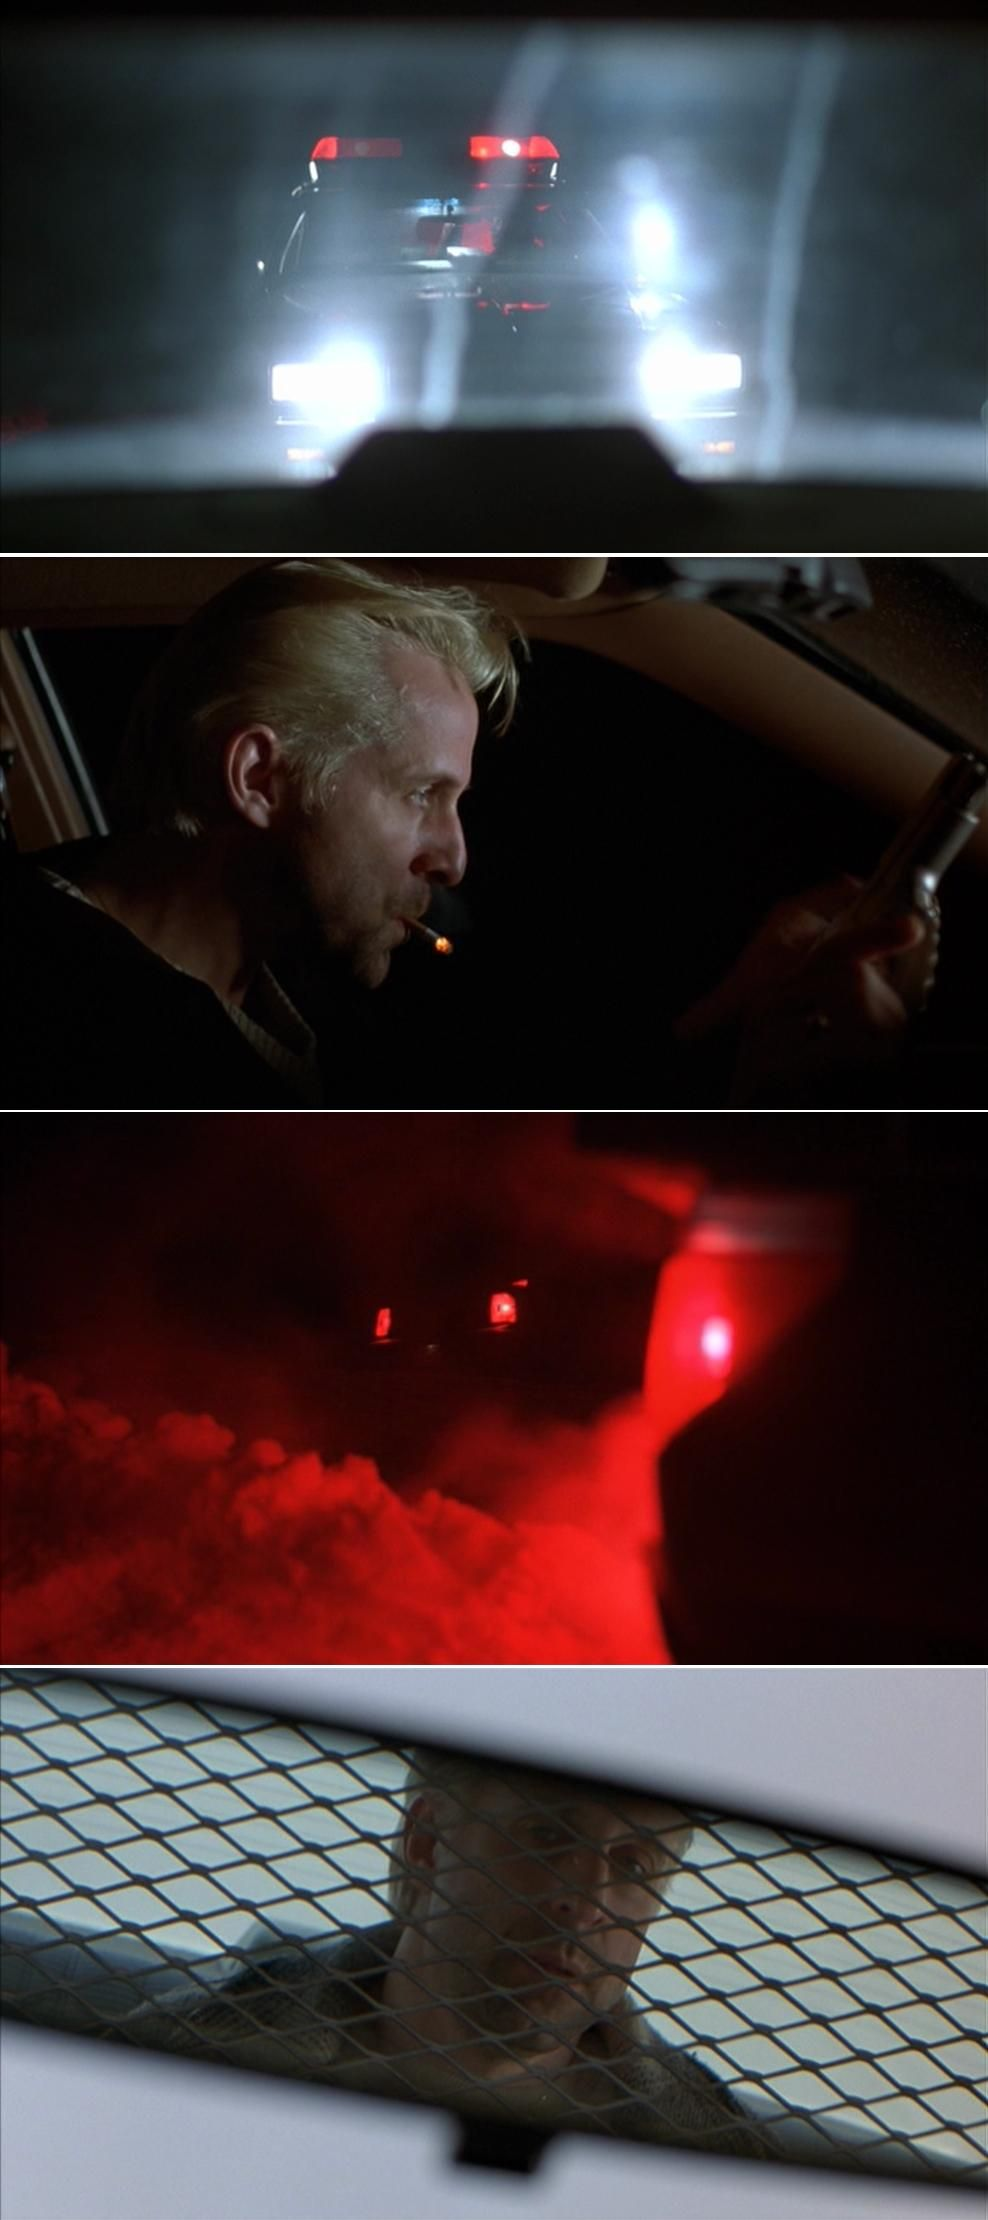 Fargo (1996) | Cinematography by Roger Deakins | Directed by Joel Coen and Ethan Coen